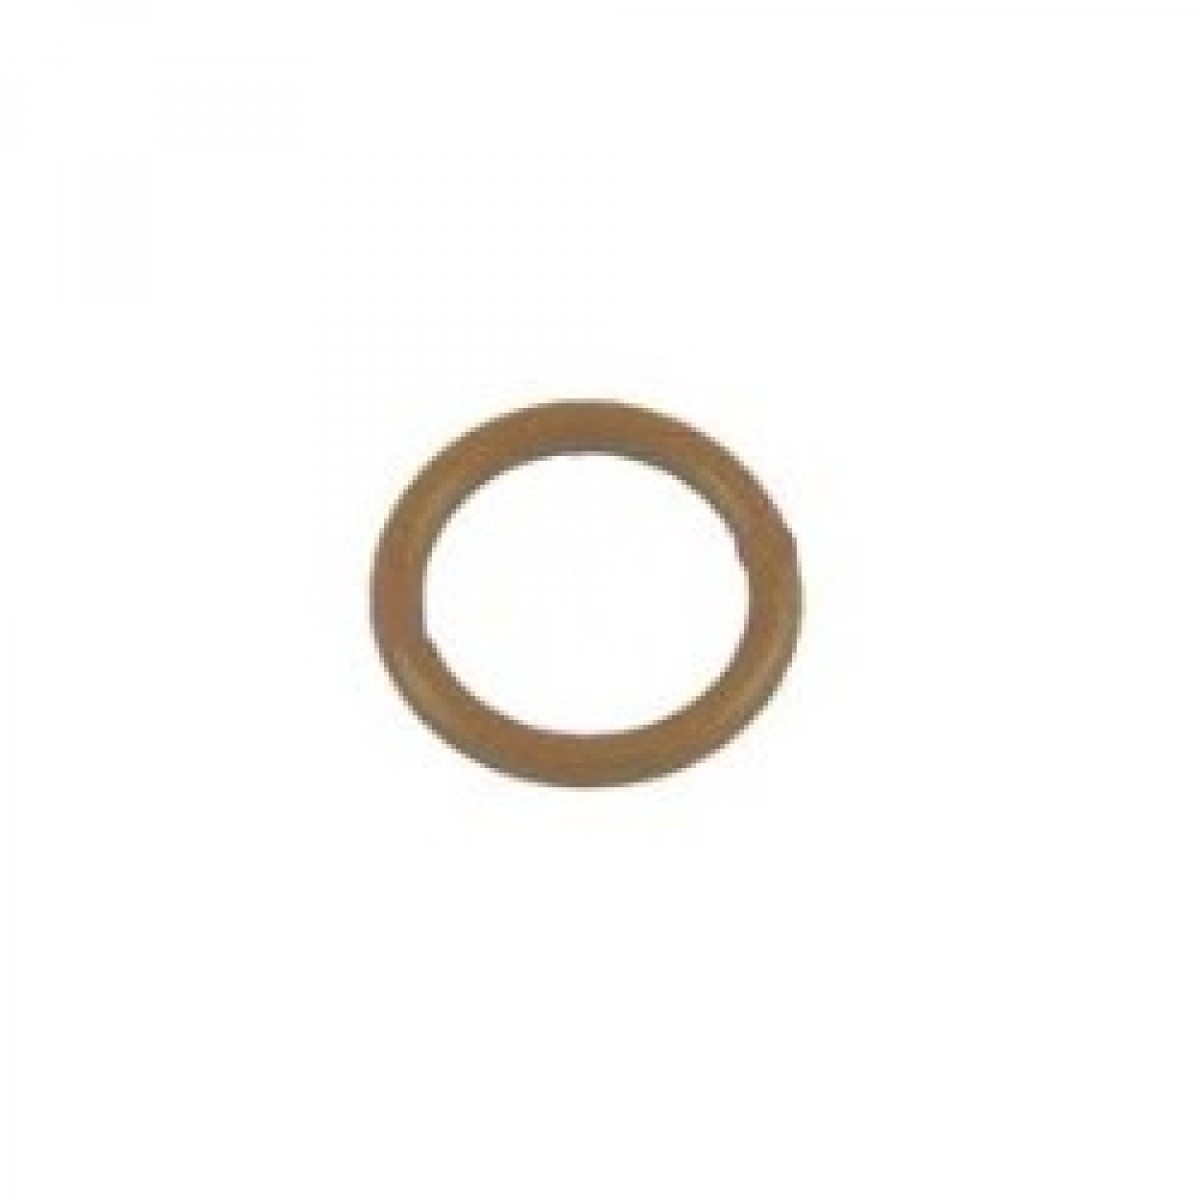 Image of 002045 Replacement O-Ring by Viqua